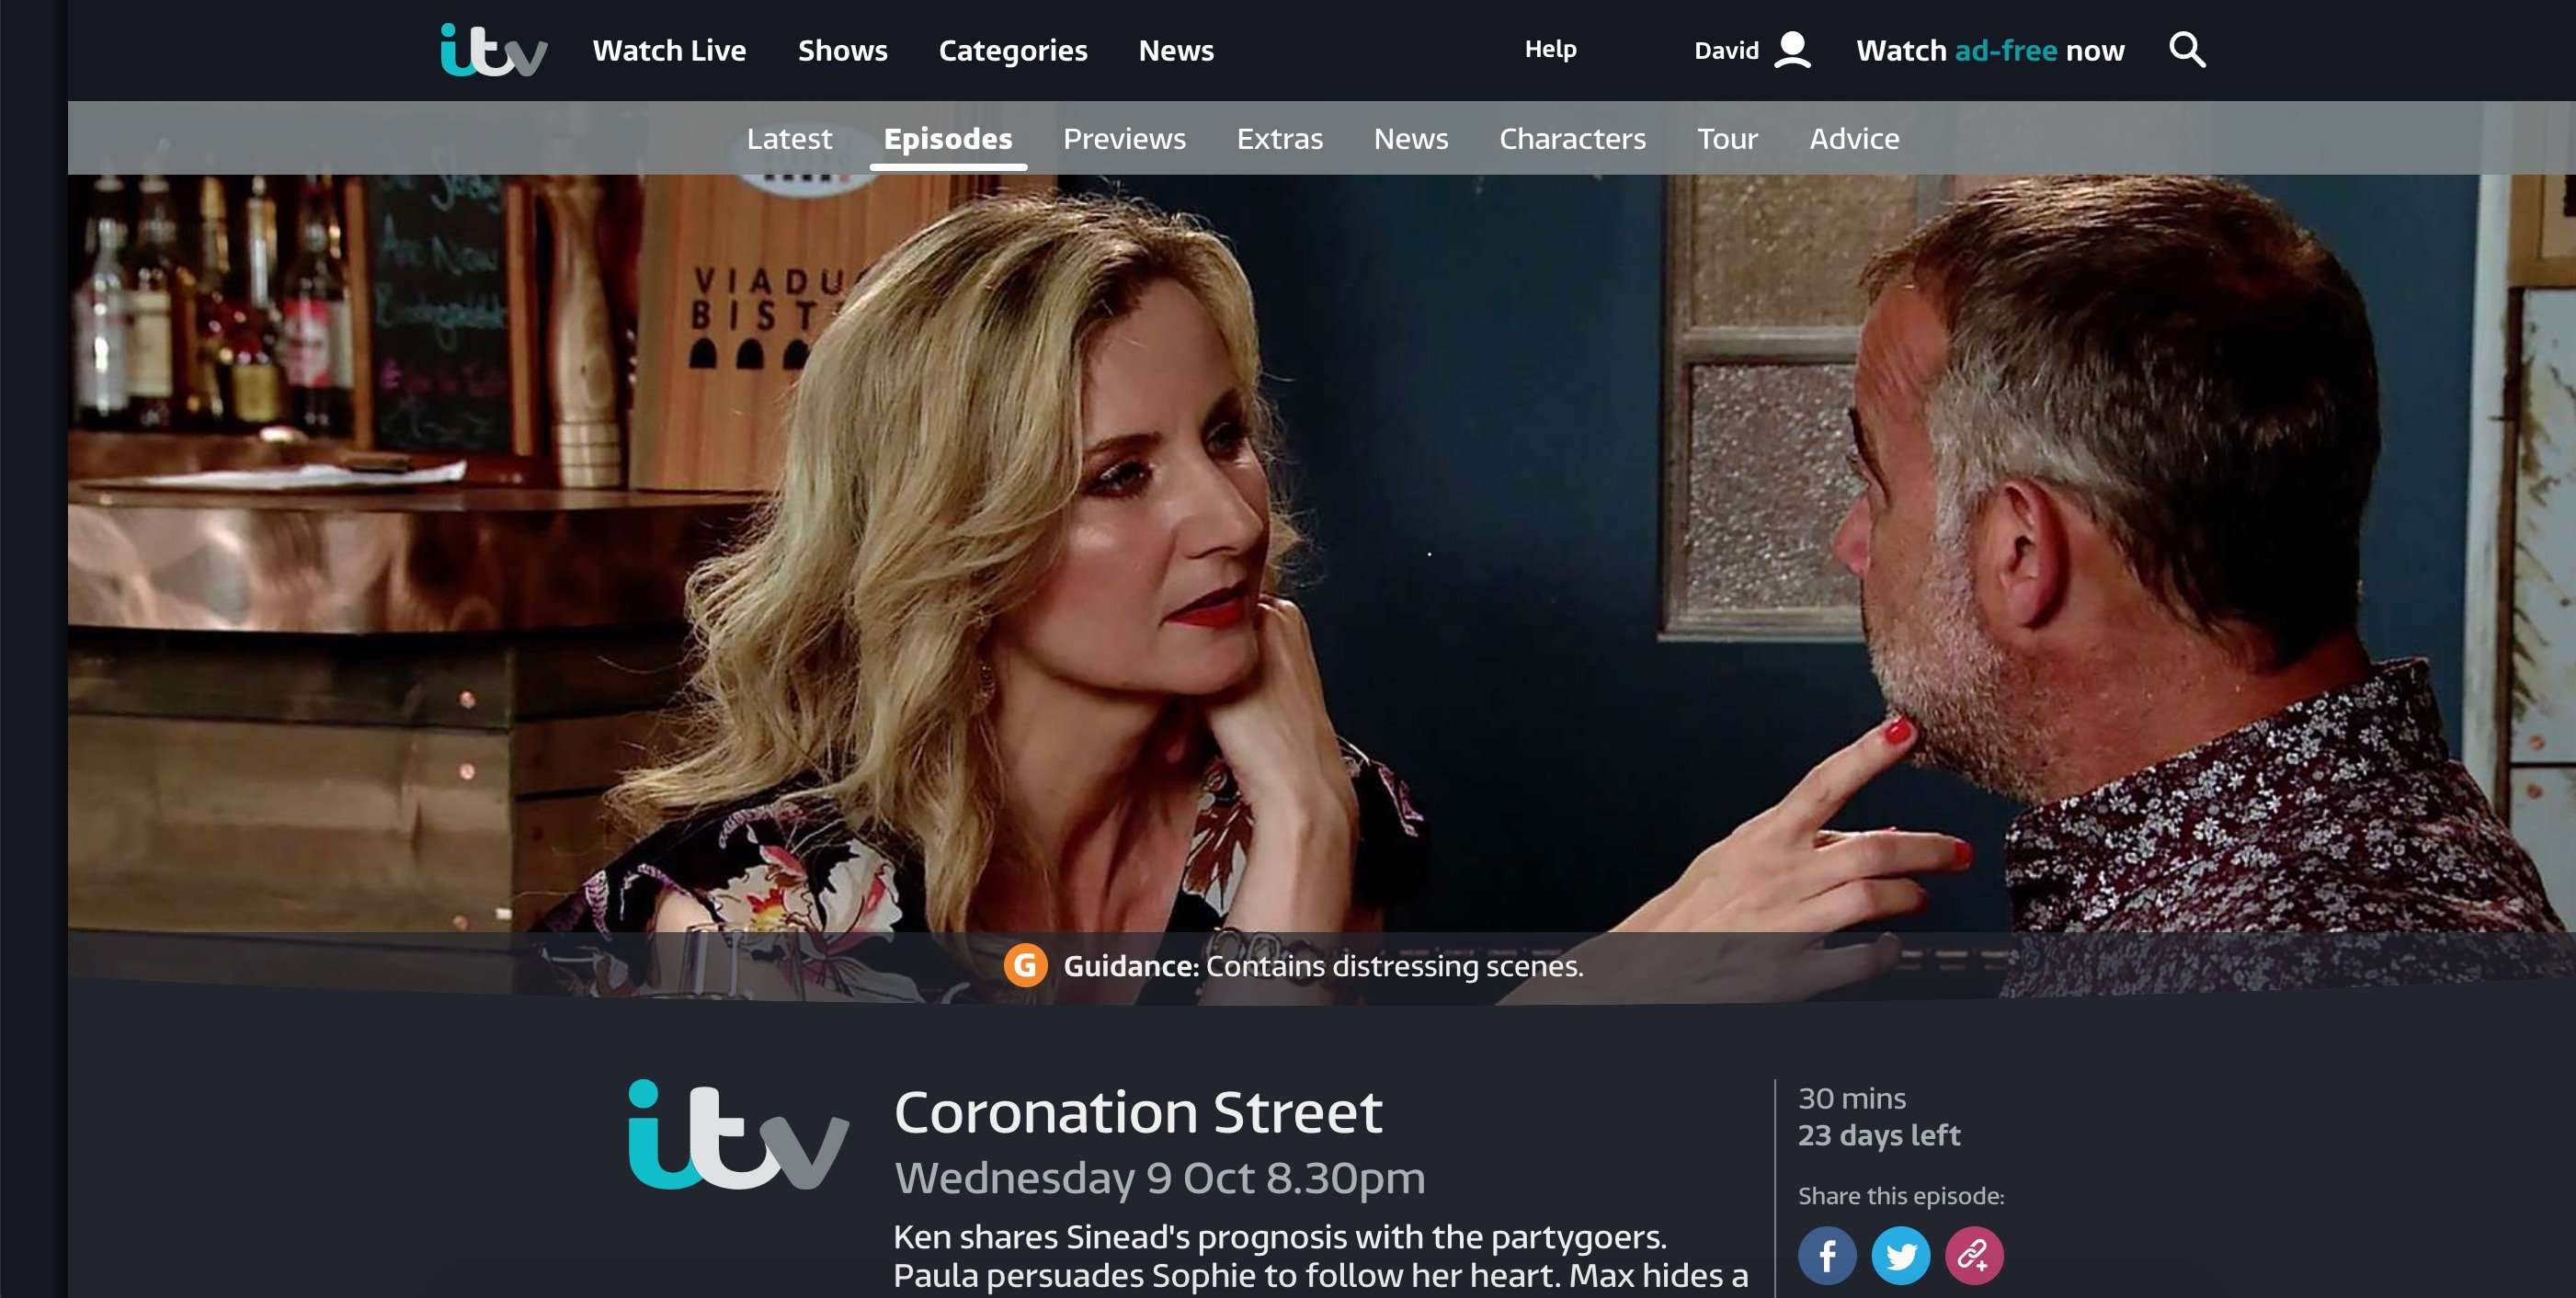 How to watch Coronation Street abroad